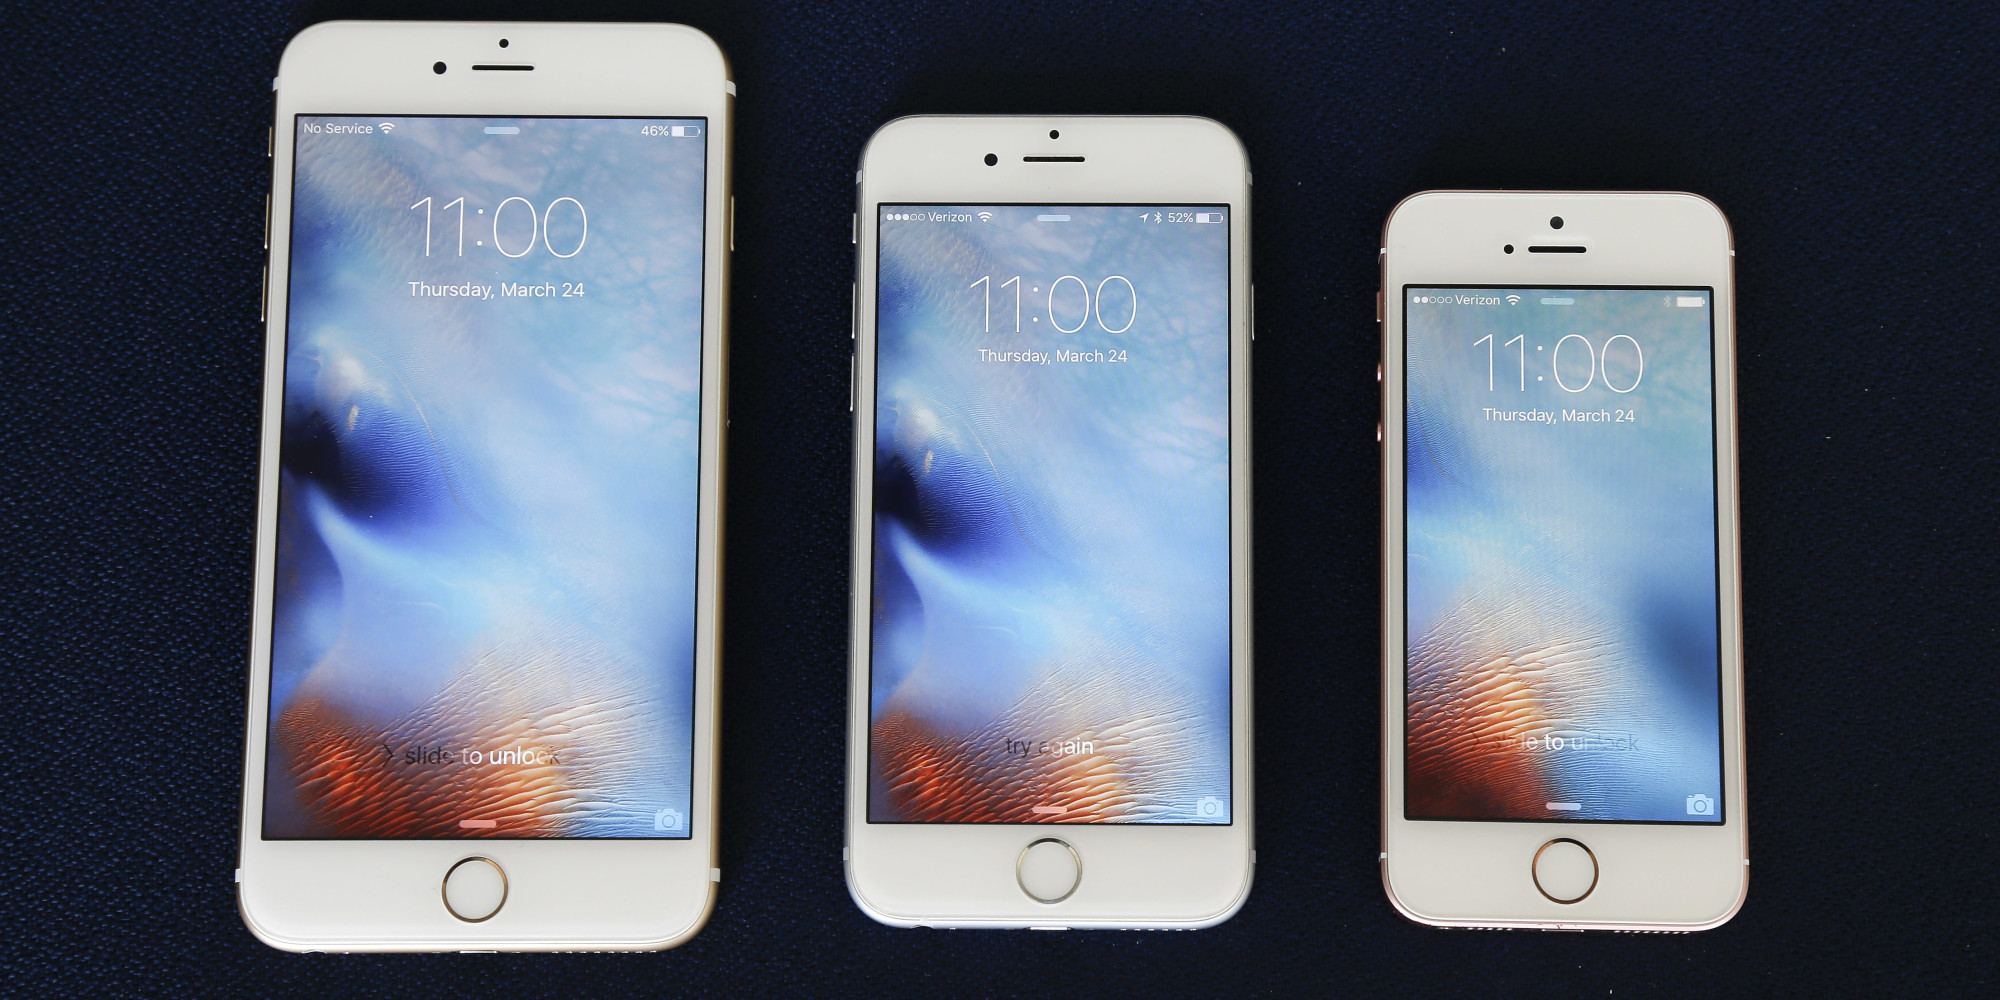 iPhone 6s Plus Attracts Share